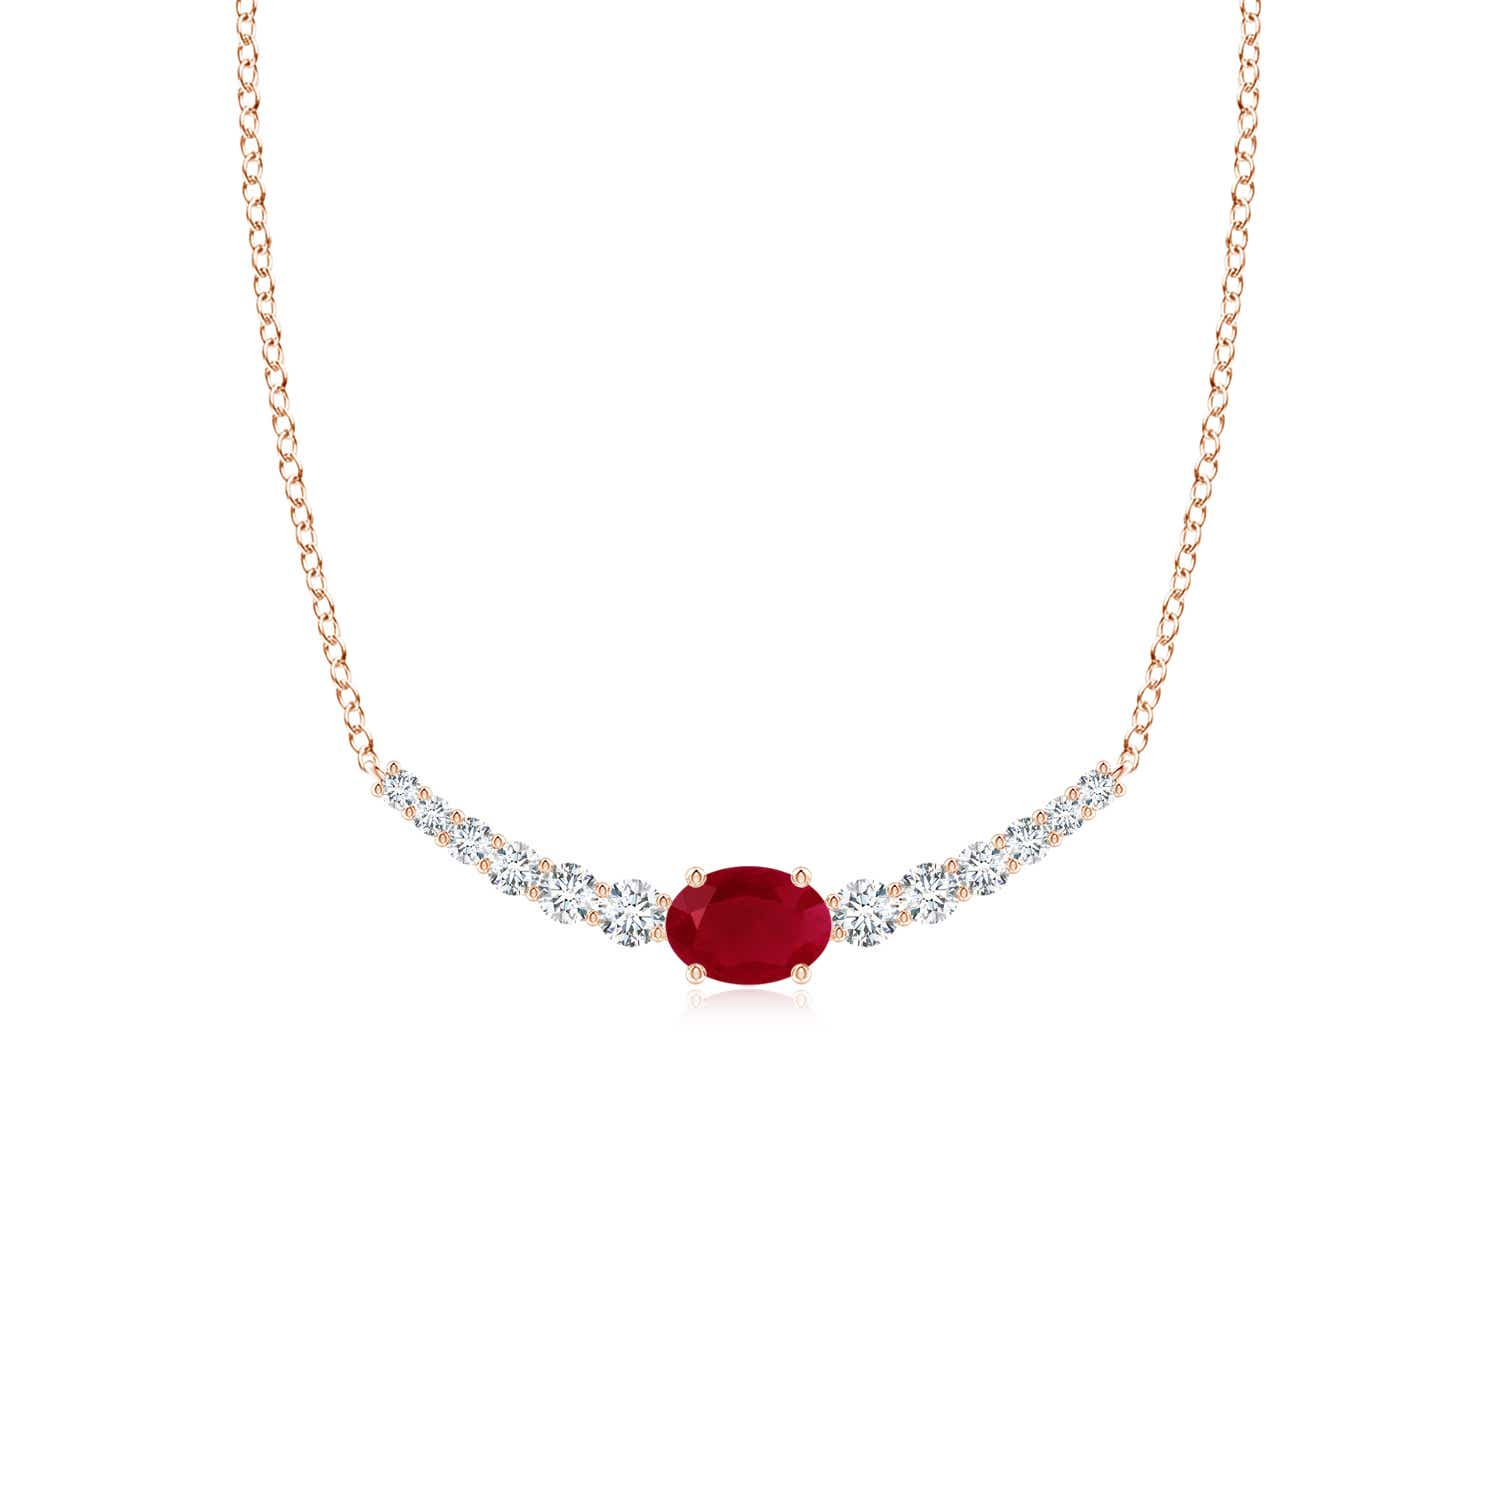 East-West Oval Ruby Curved Bar Necklace with Diamonds